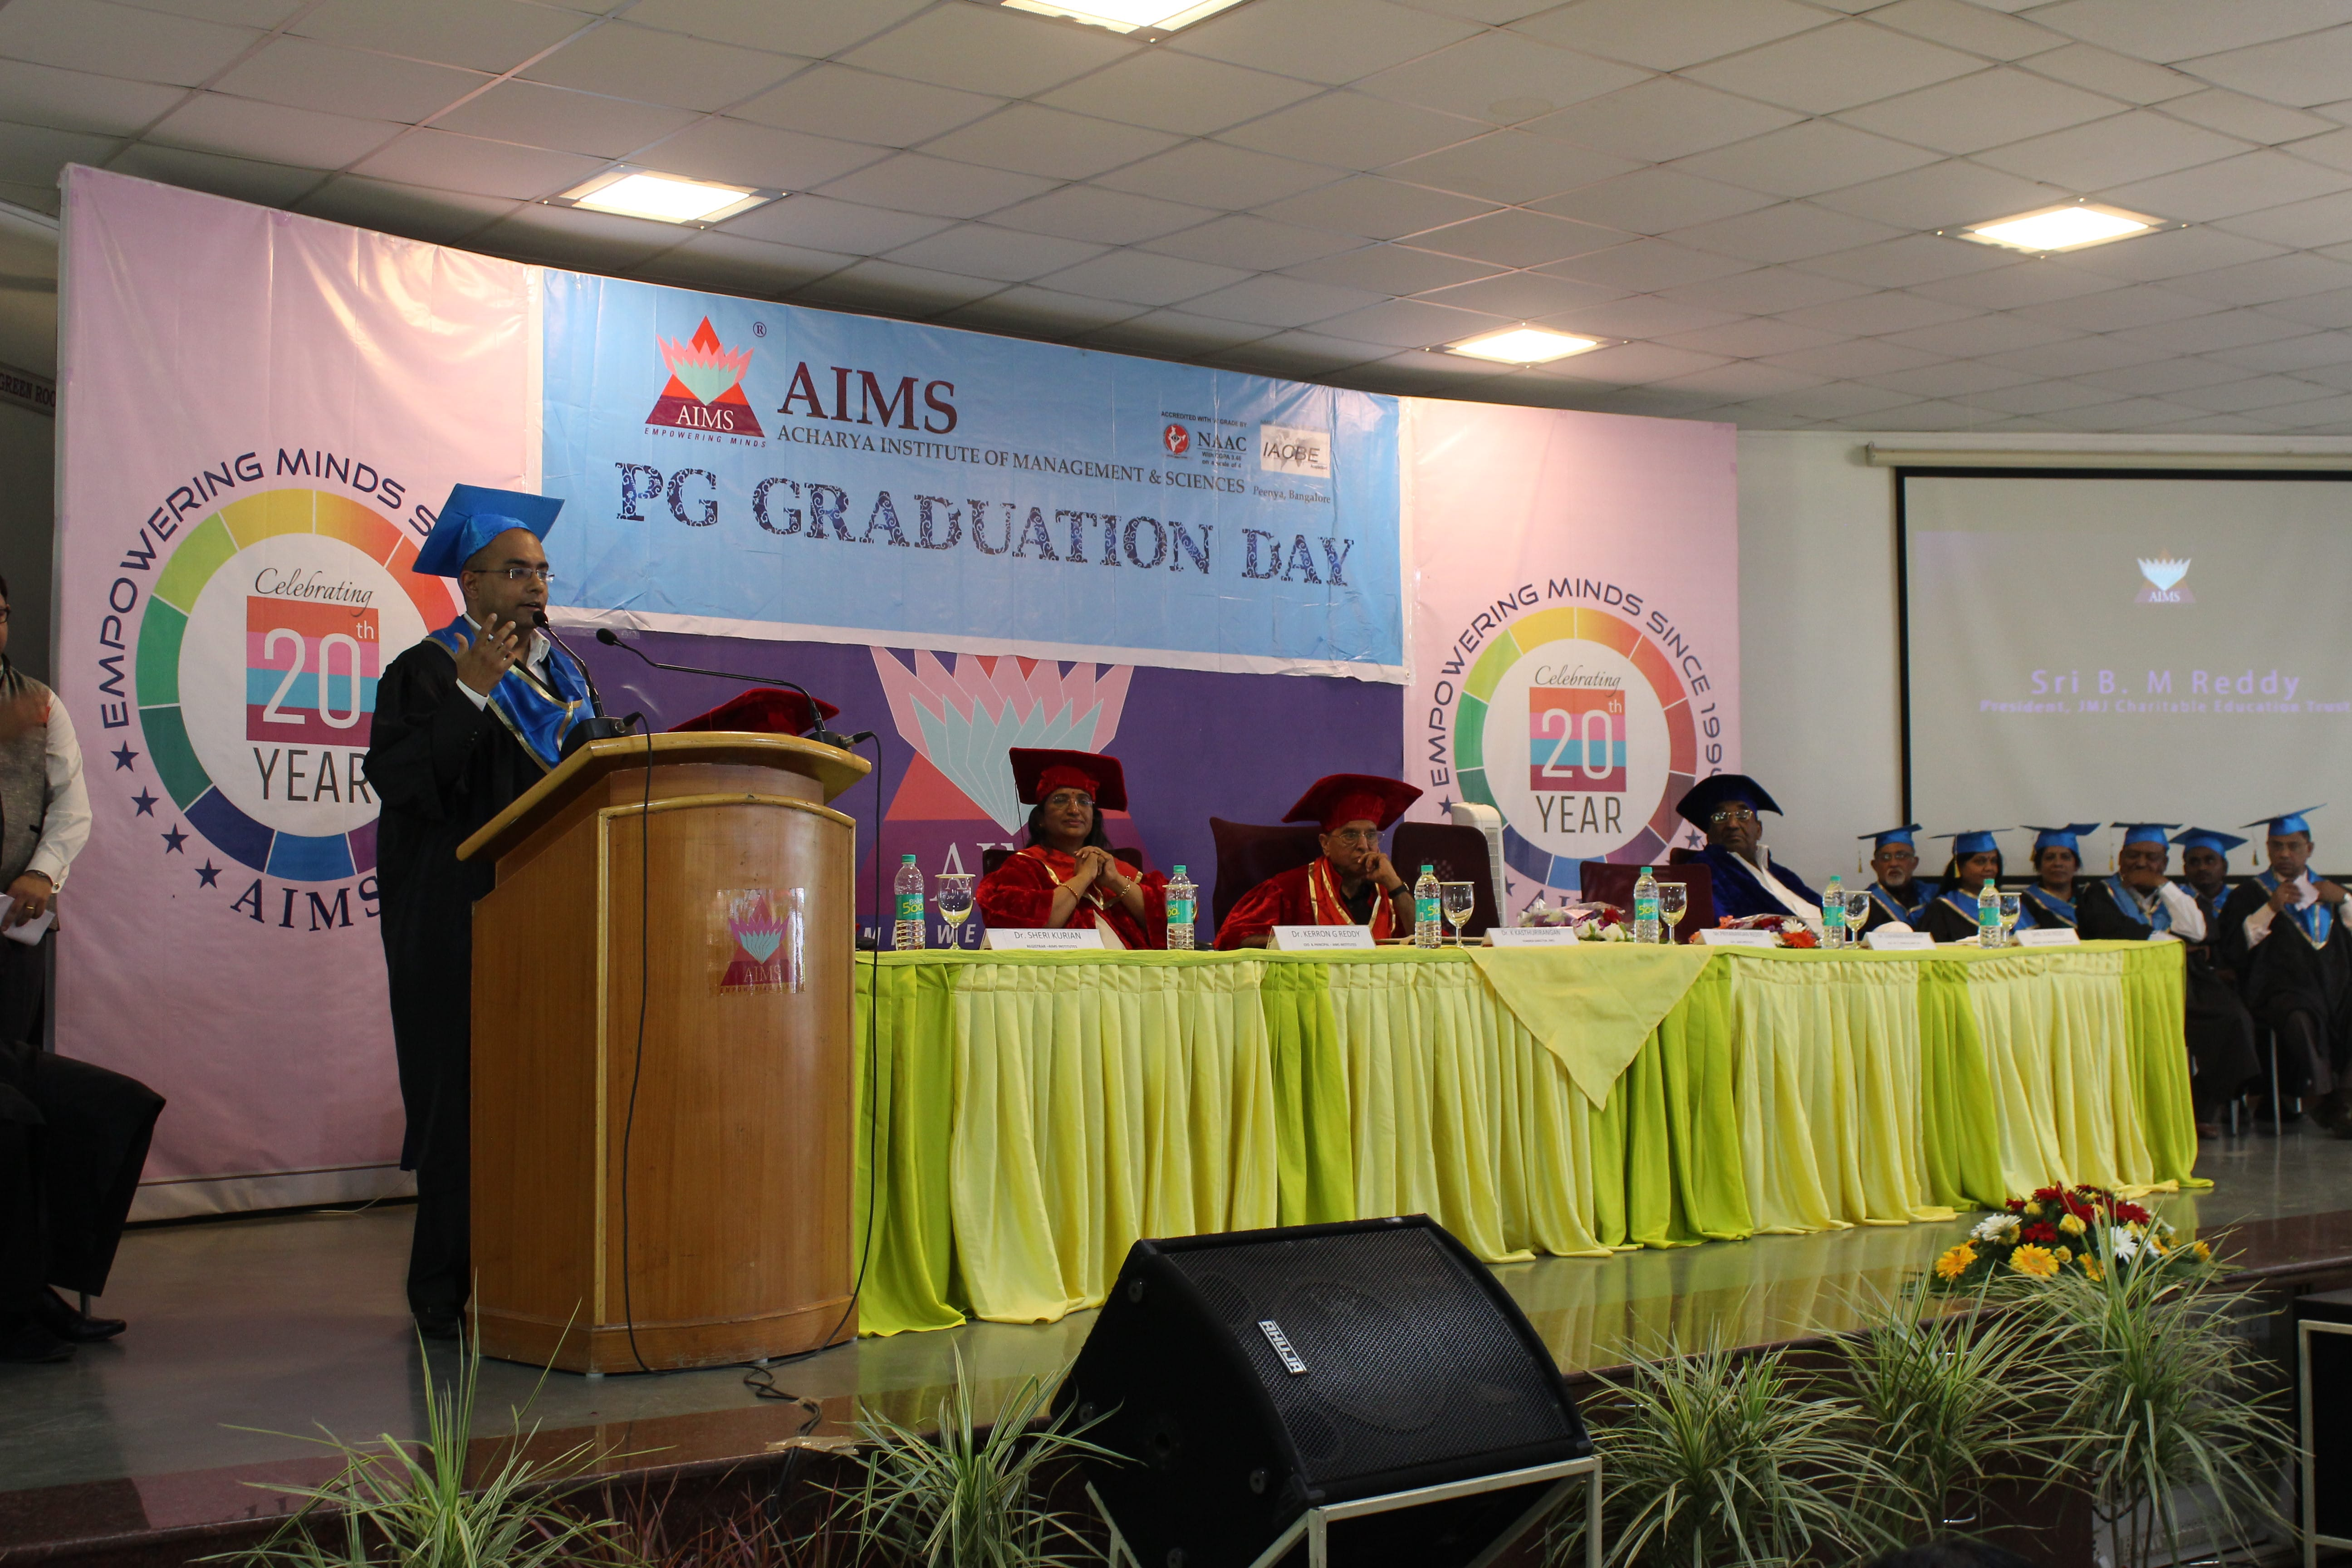 pg-graduation-day-7